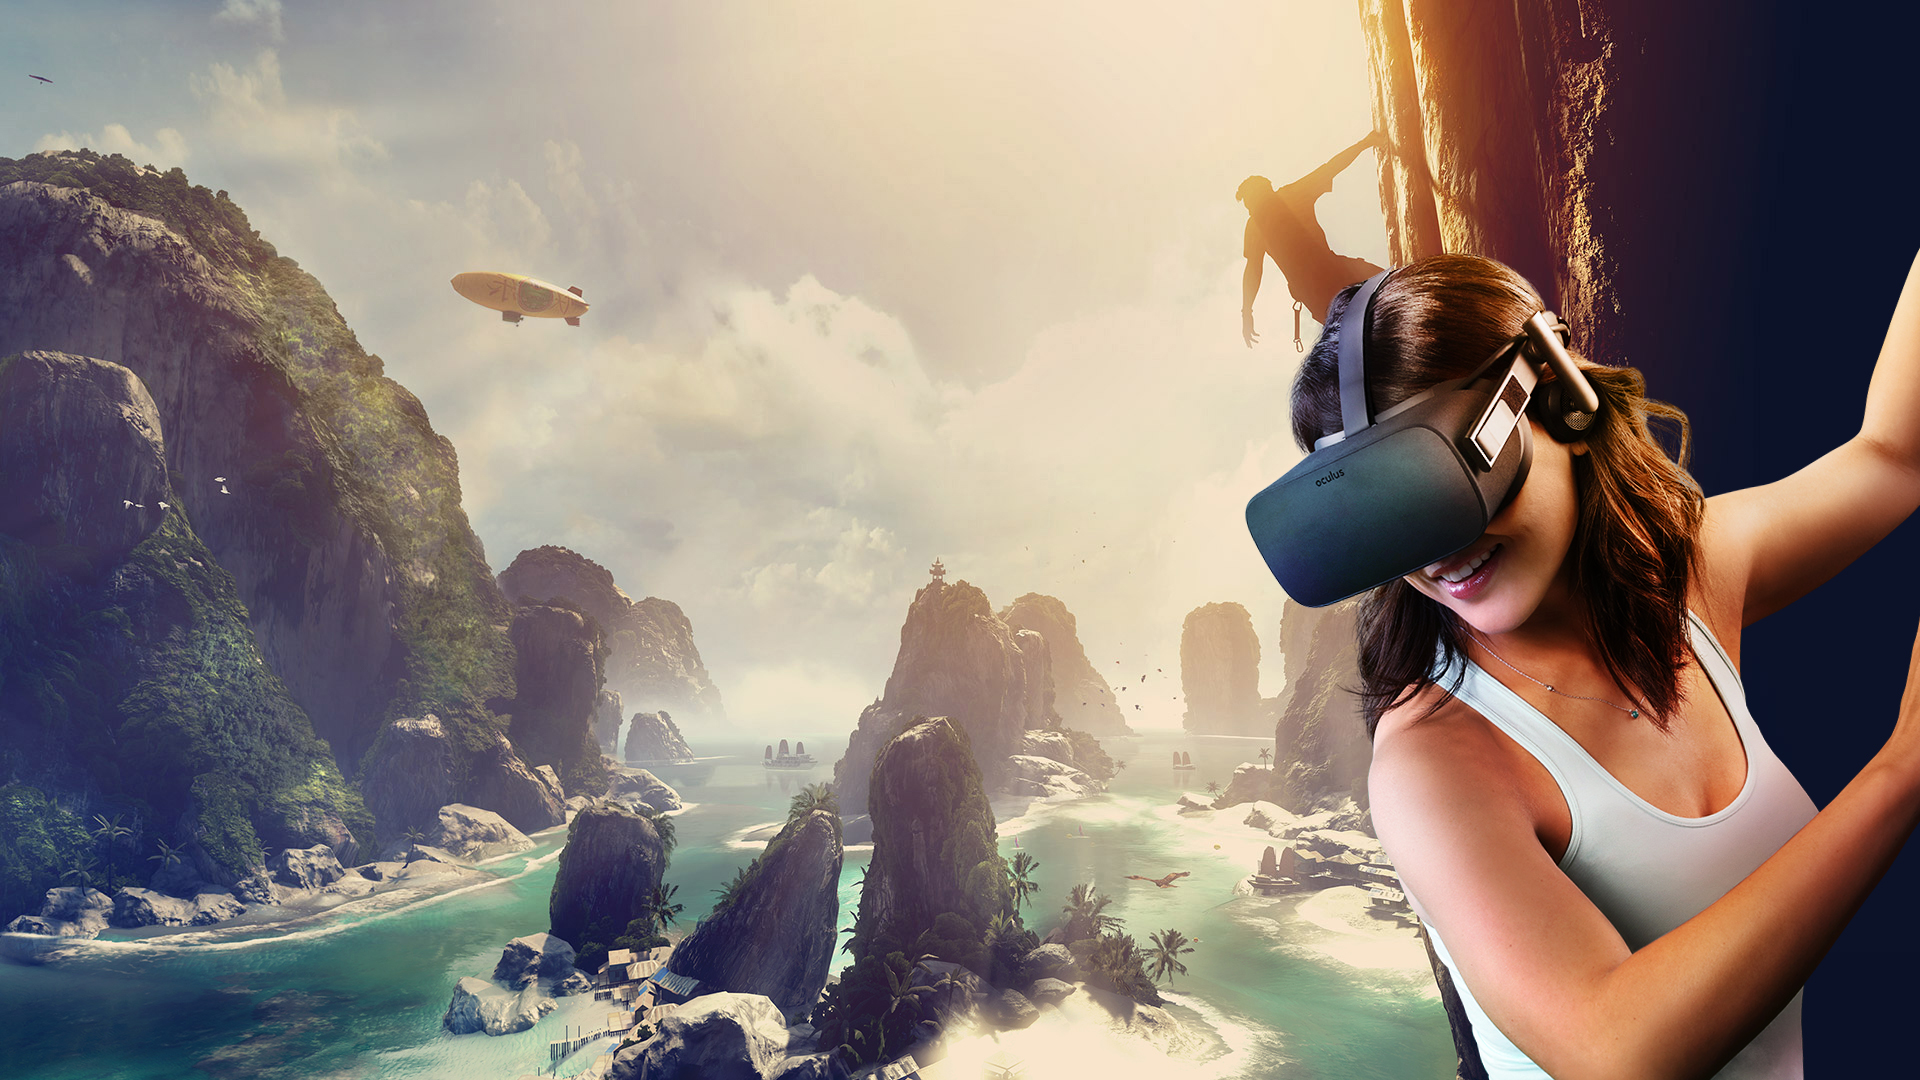 oculus_rift_-_girl-the-climb_v1.jpg